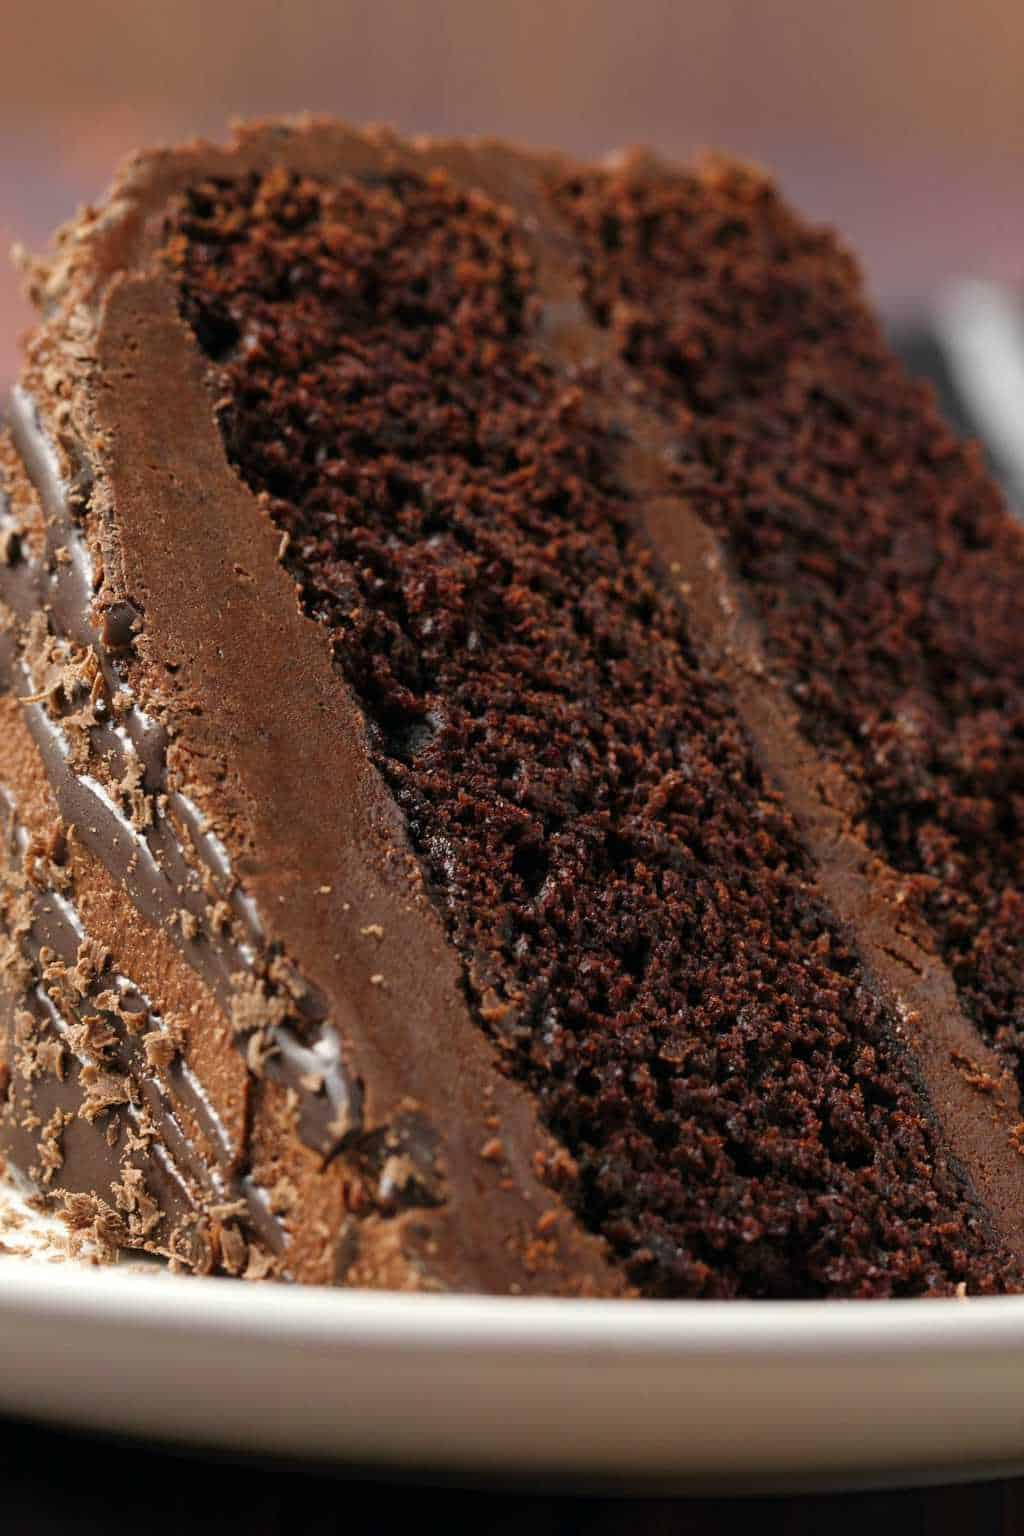 A slice of vegan chocolate fudge cake on a white plate.